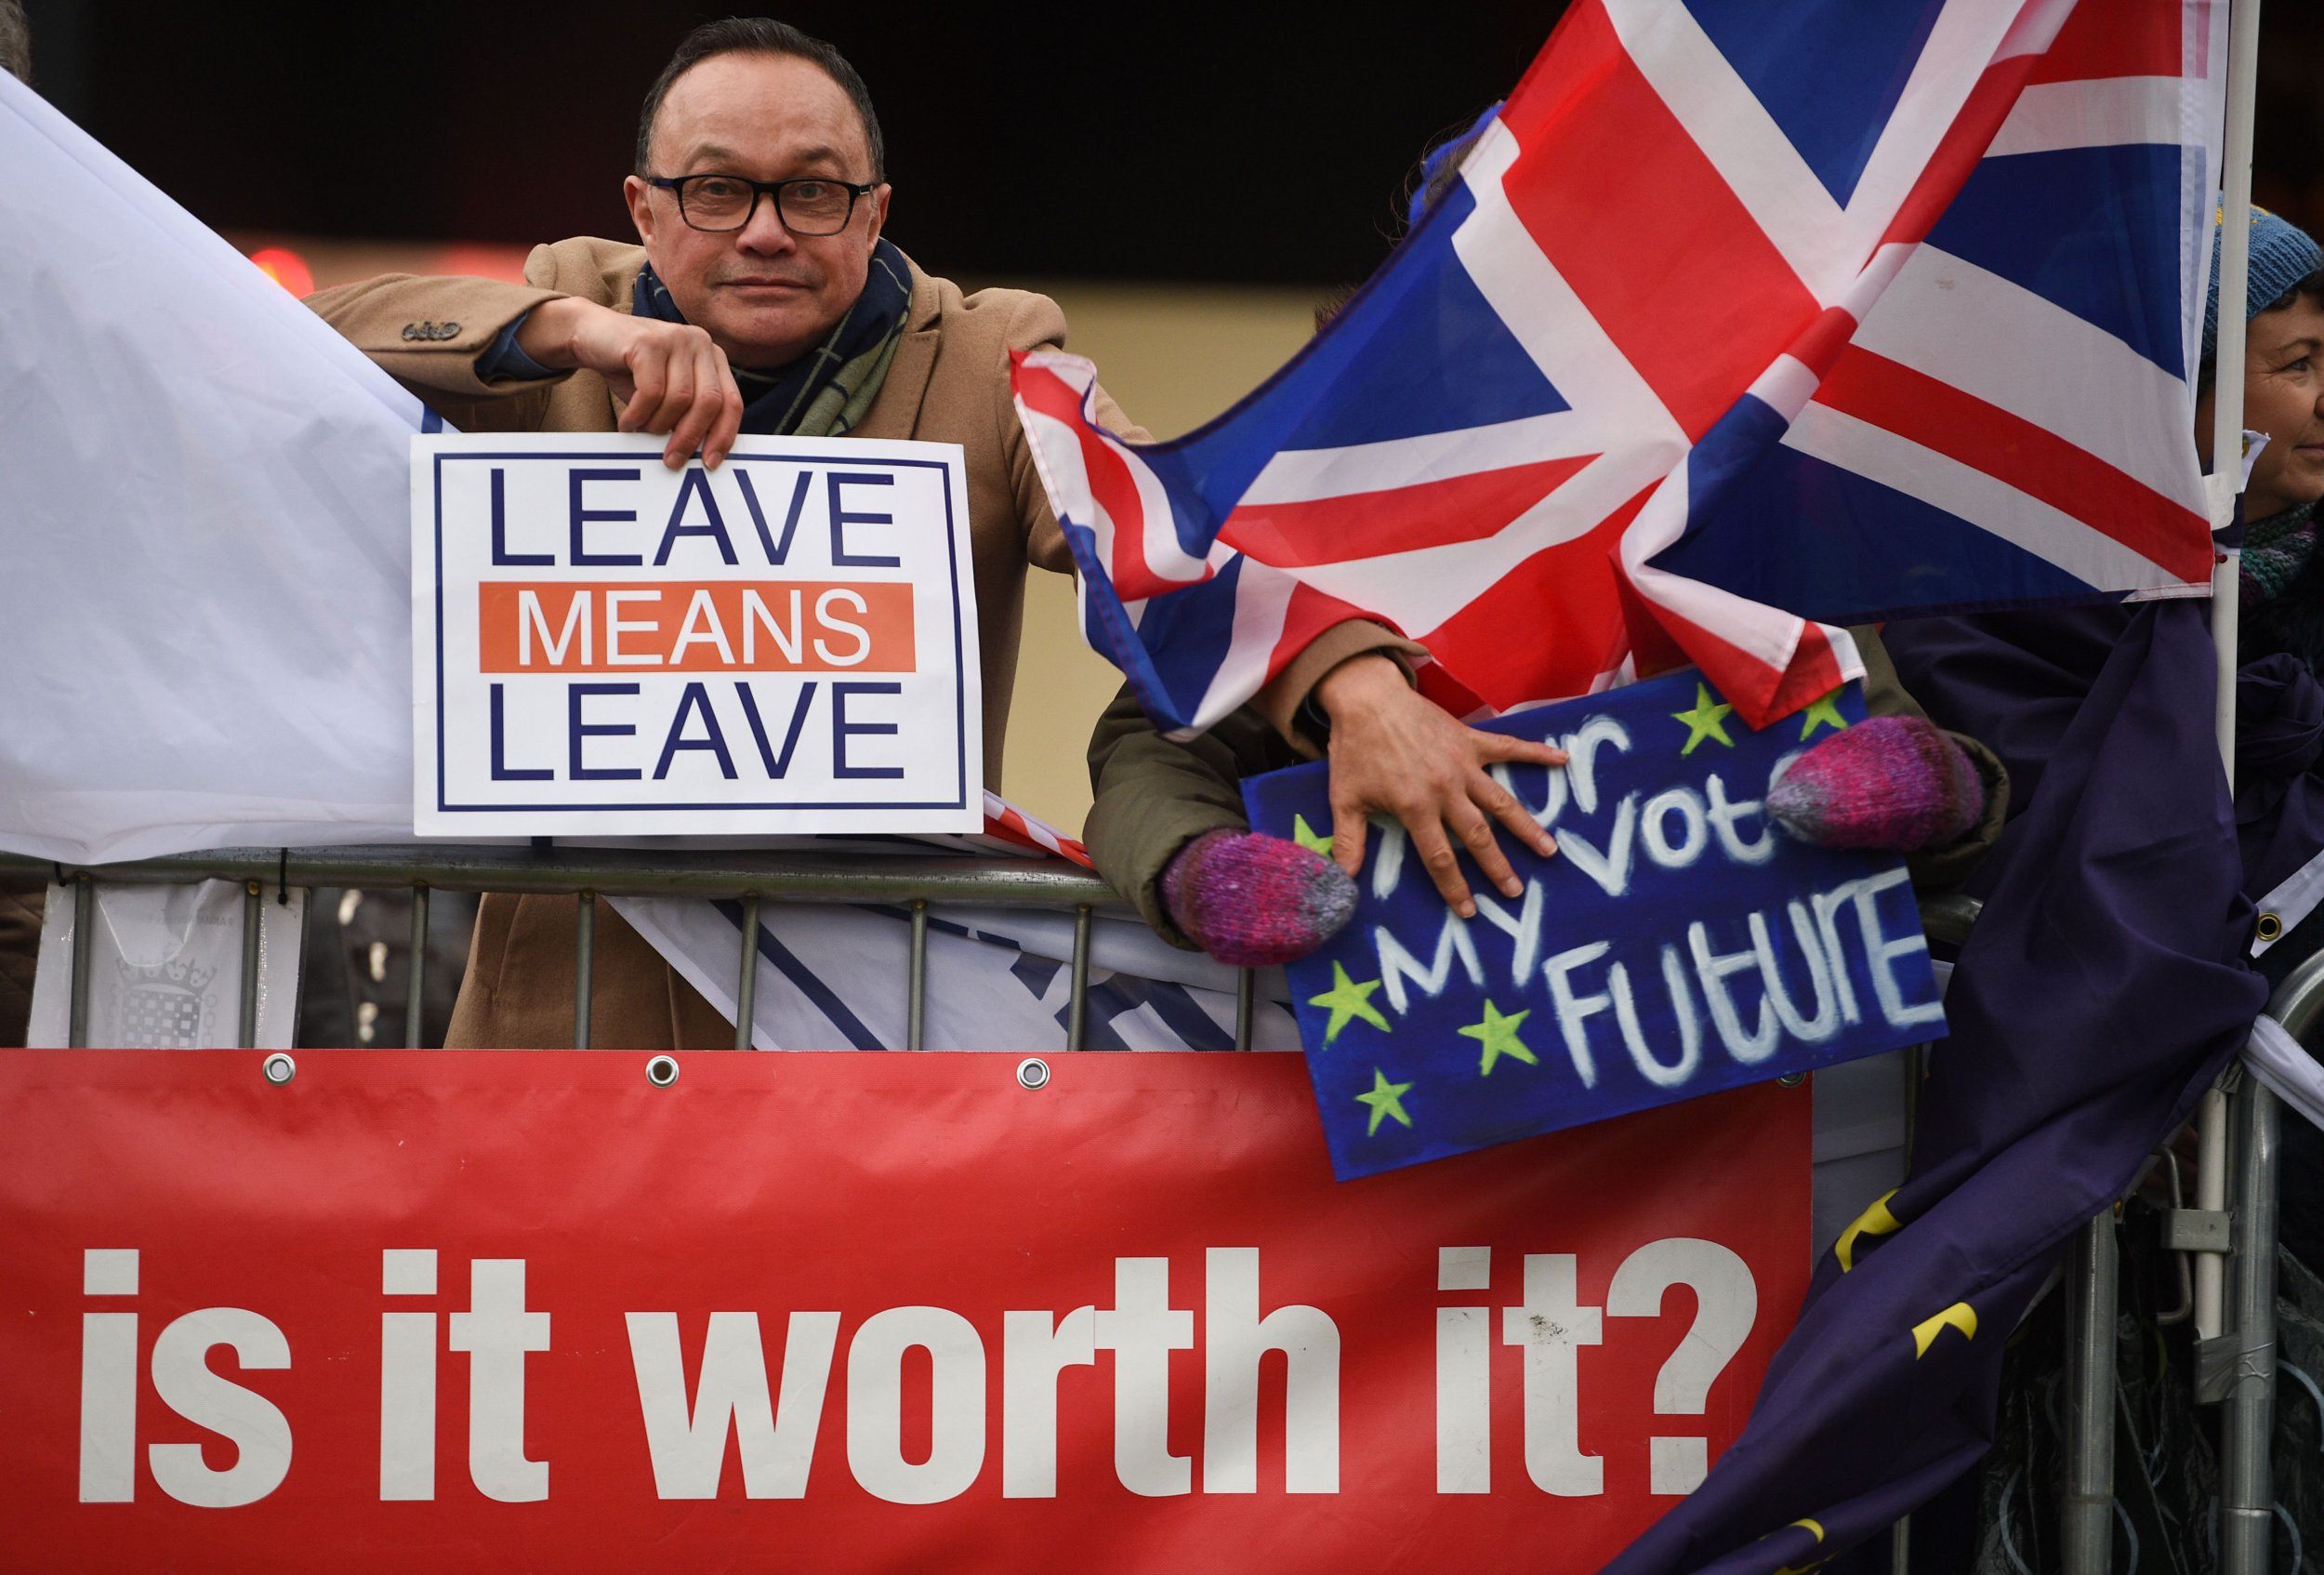 'Brexit wasn't worth the hassle', UK voters say